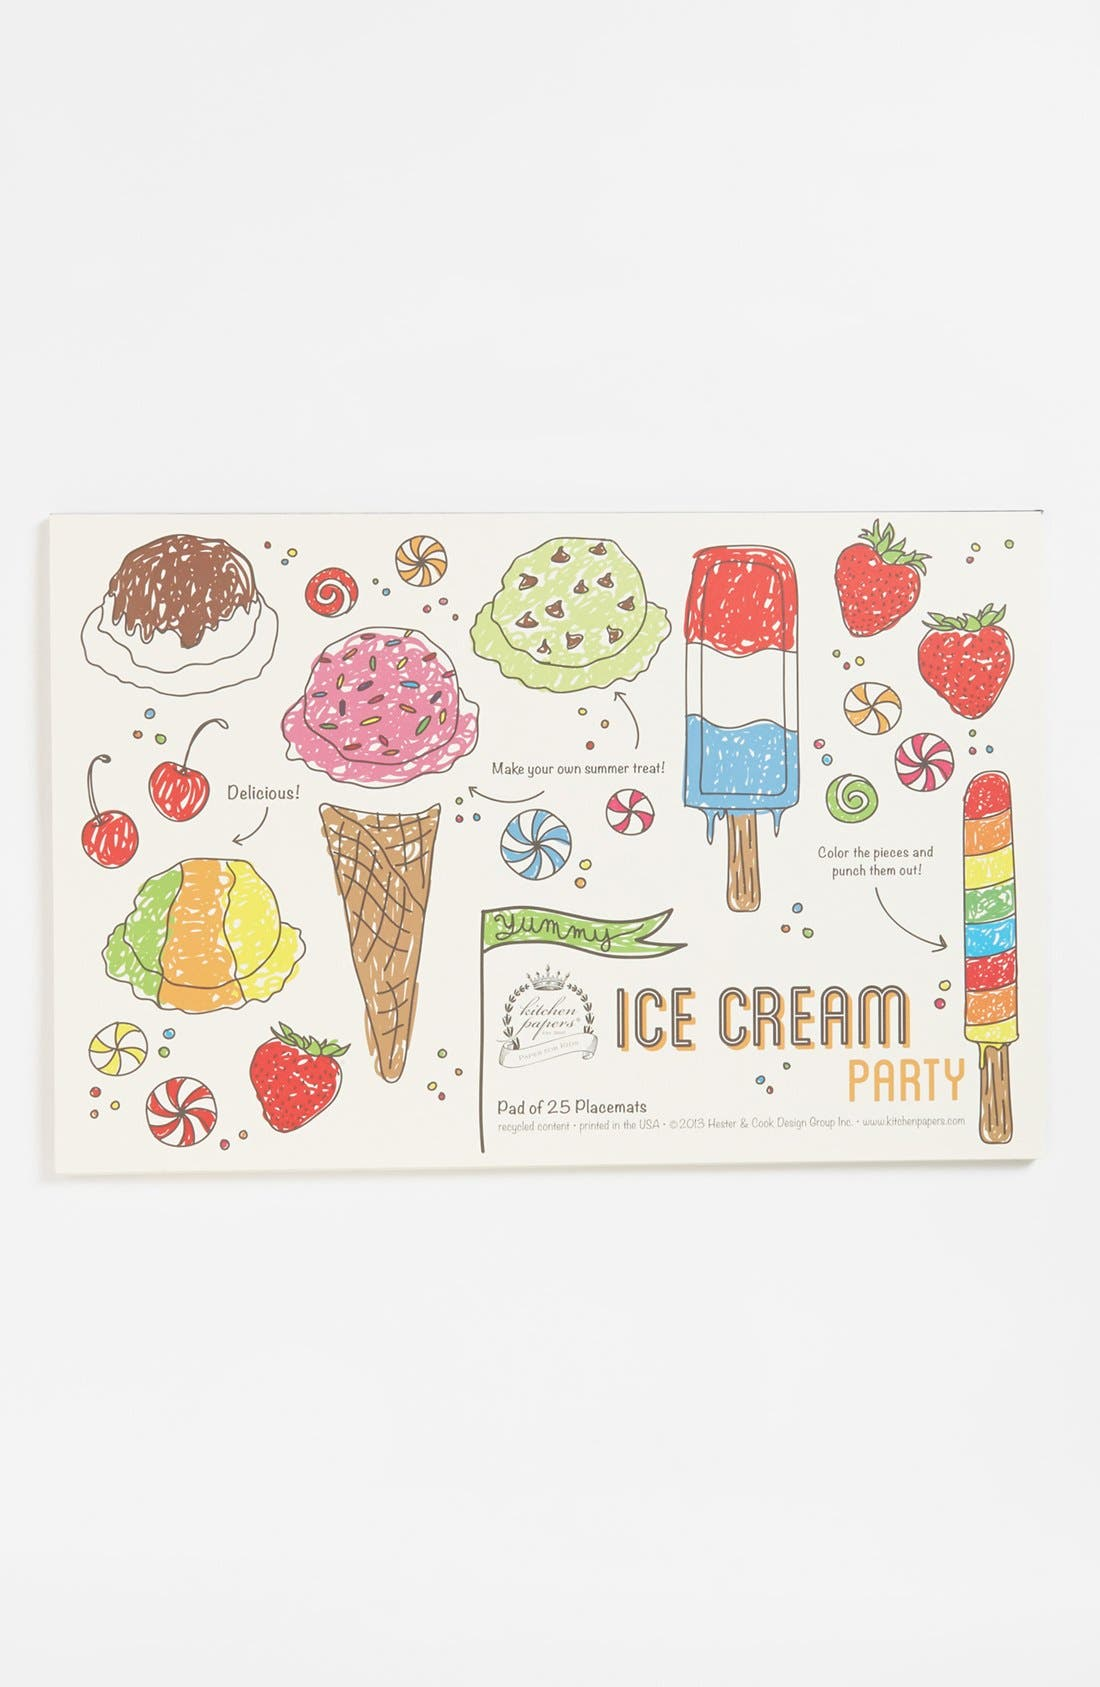 Alternate Image 1 Selected - Kitchen Papers by Cake 'Ice Cream Party' Kids Paper Placemat Pad